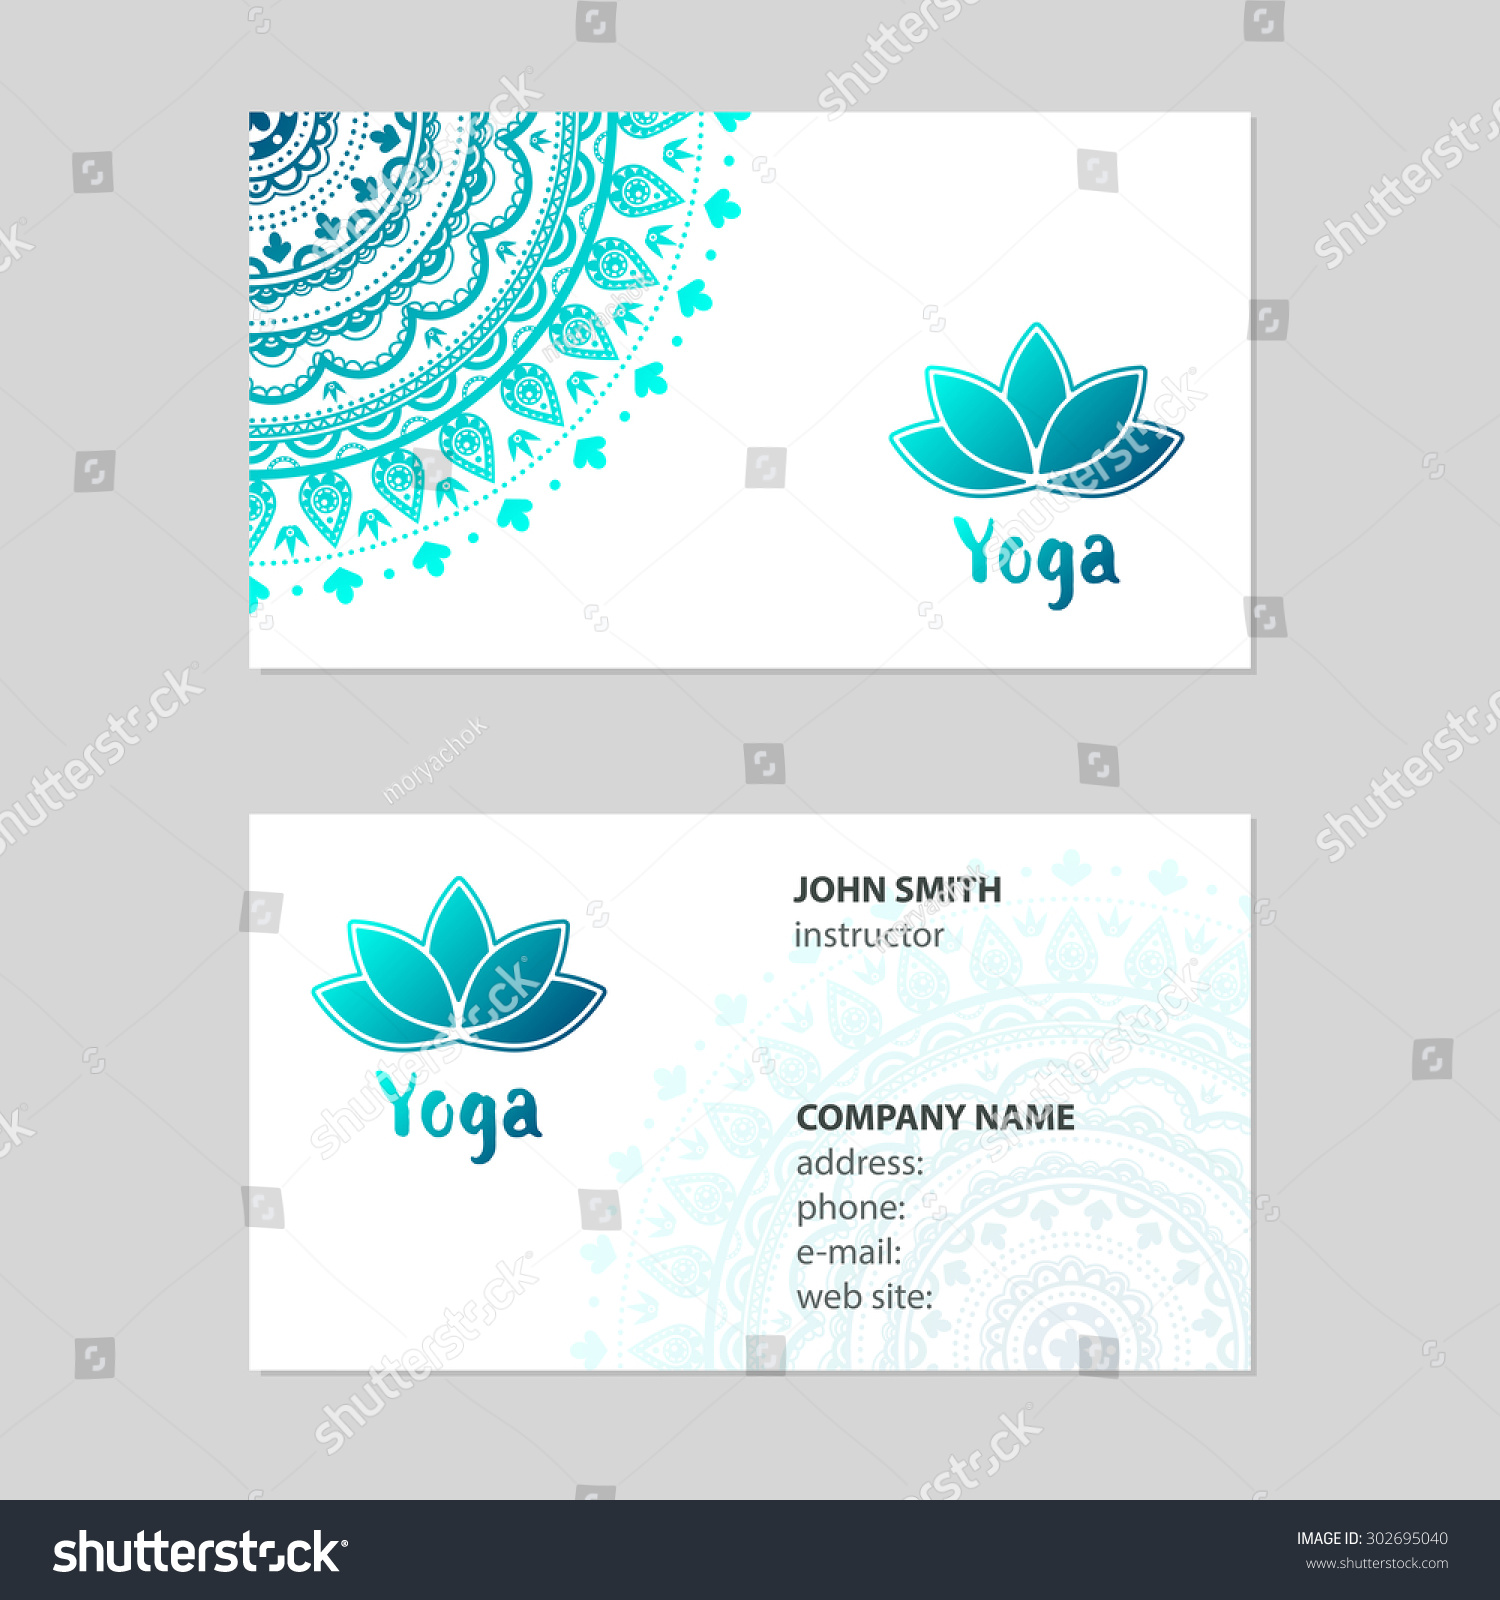 Business Card Yoga Stock Photo (Photo, Vector, Illustration ...